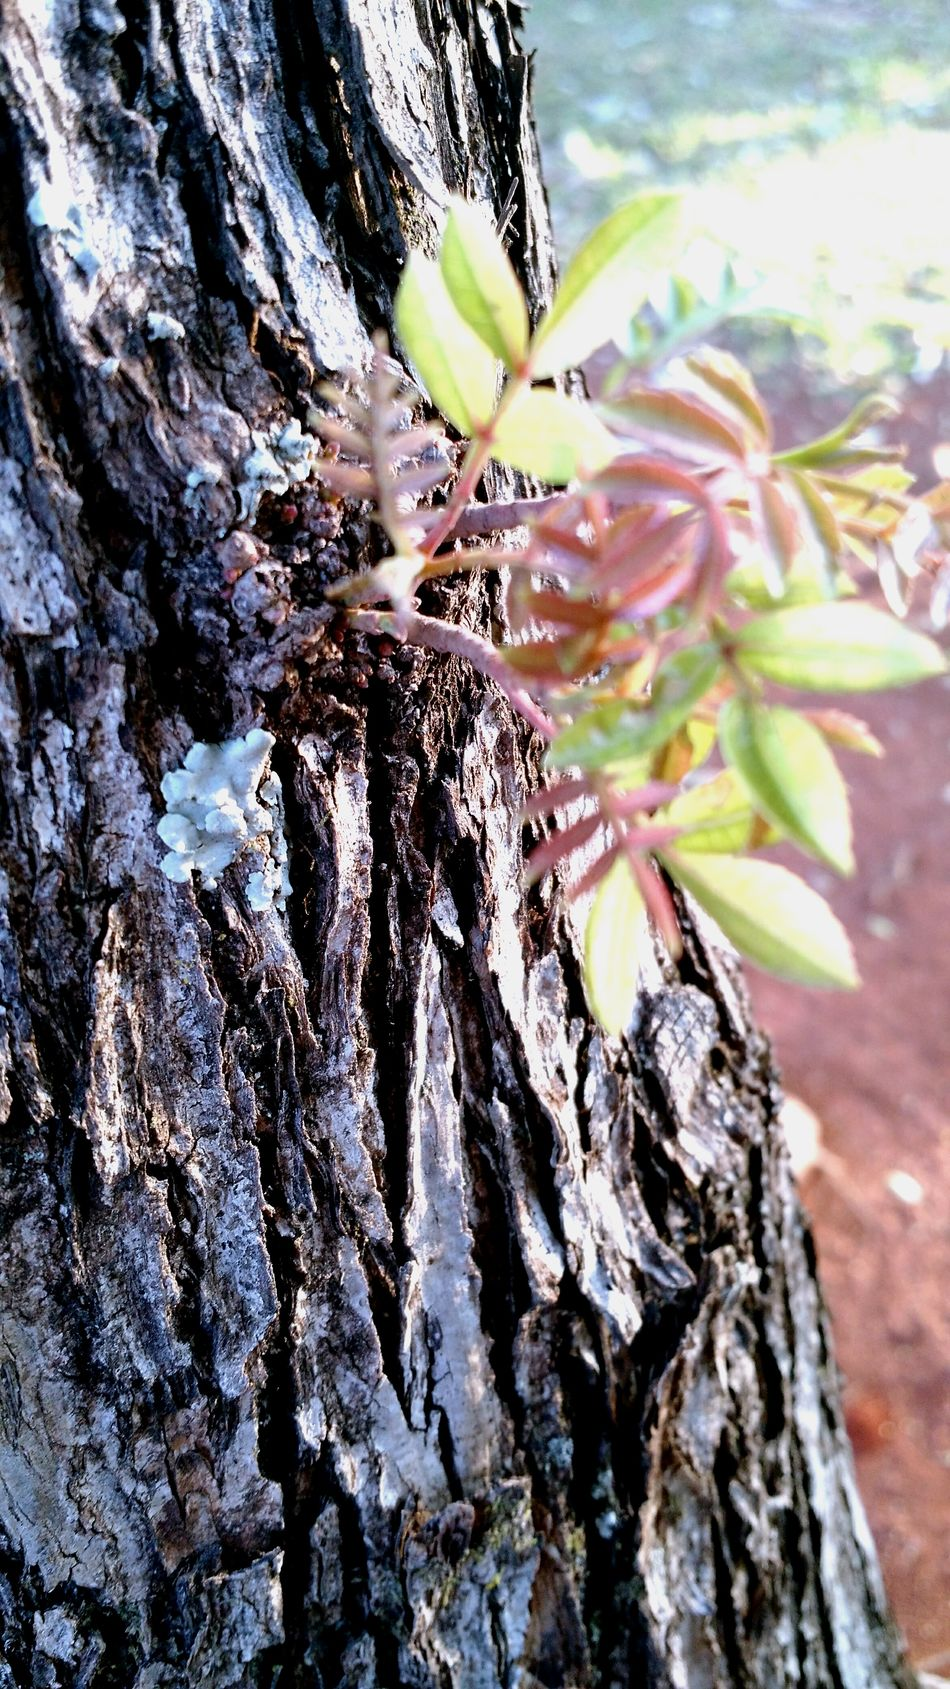 Tree Little Plant Little Plants Green Brown Brown Nature Life Trunk Plant On Tree Plant On Trunk